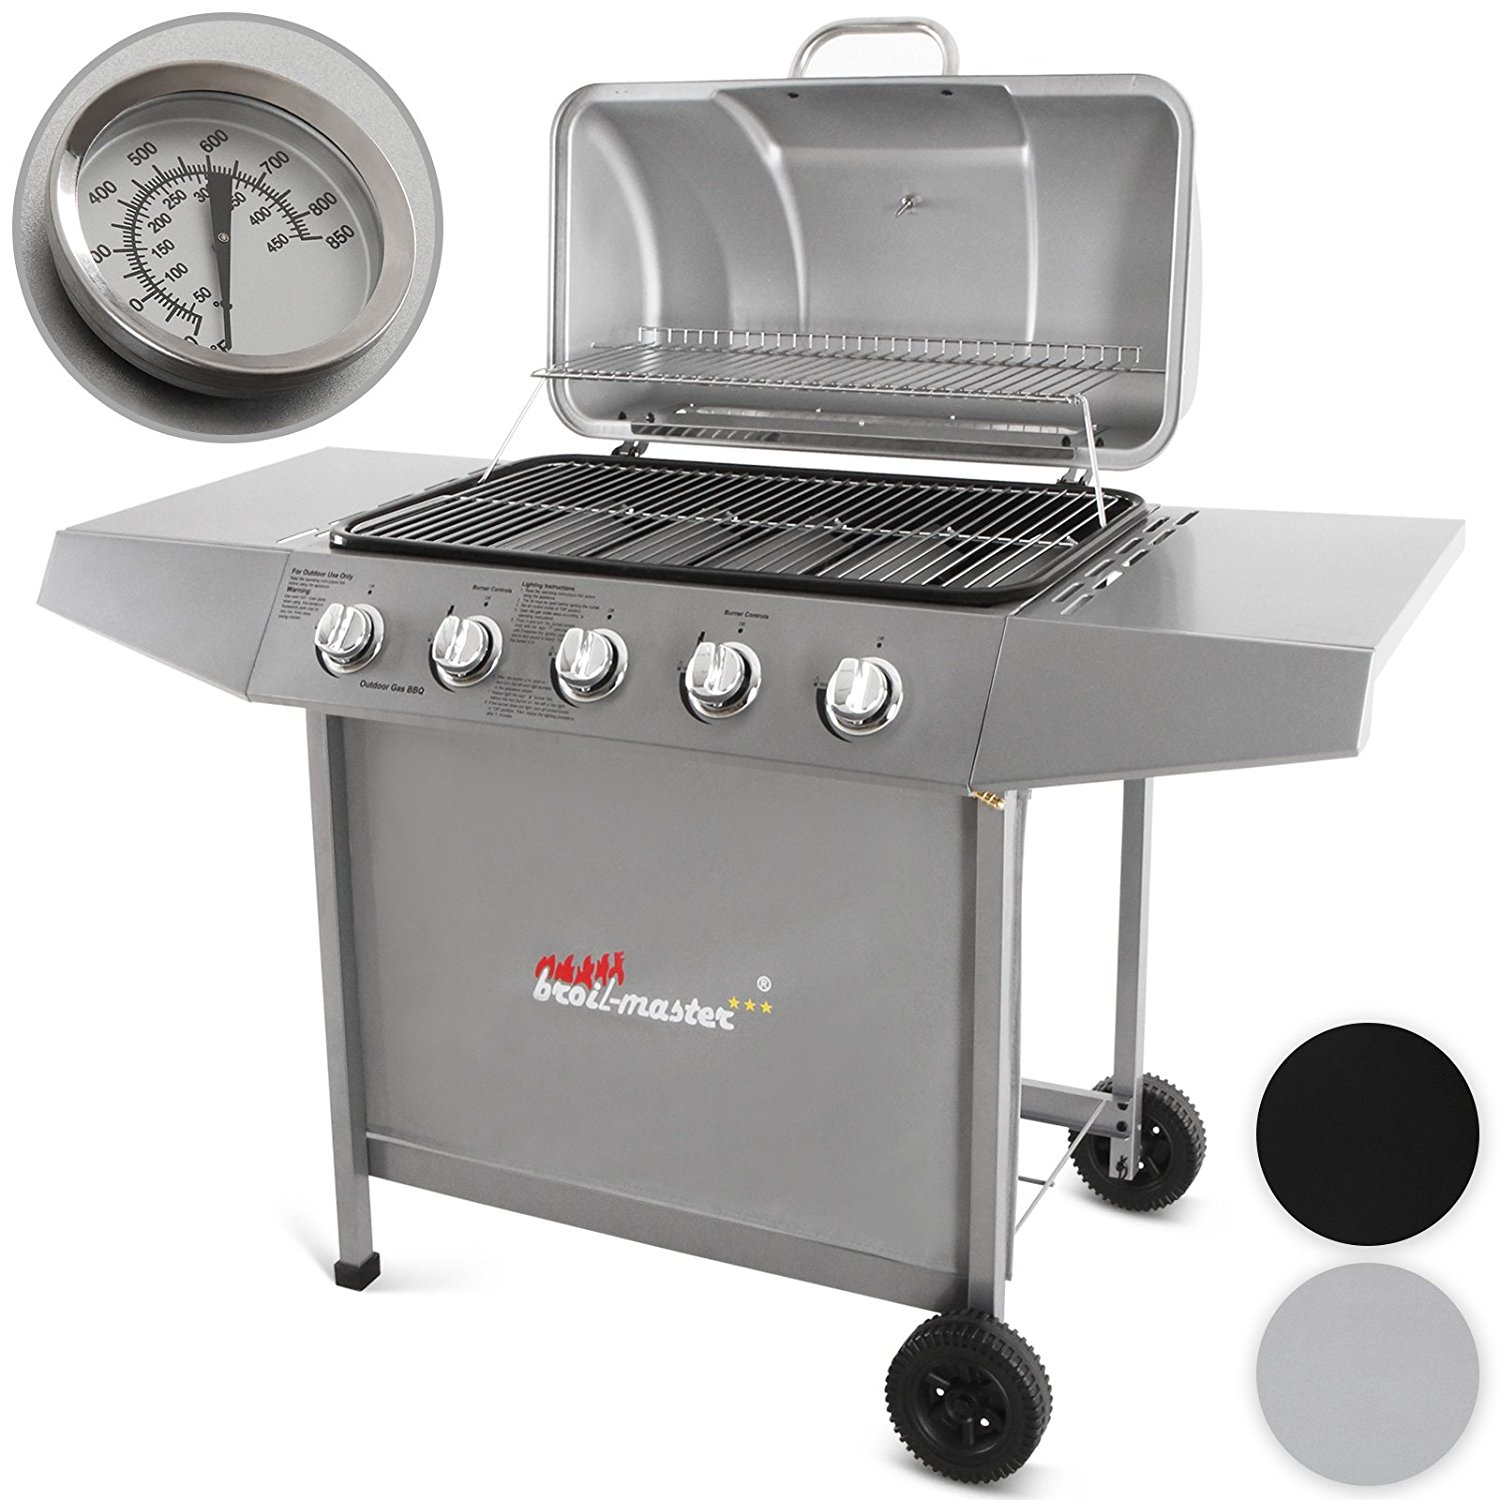 Broil-master Gasgrill BBQ voor €99,95